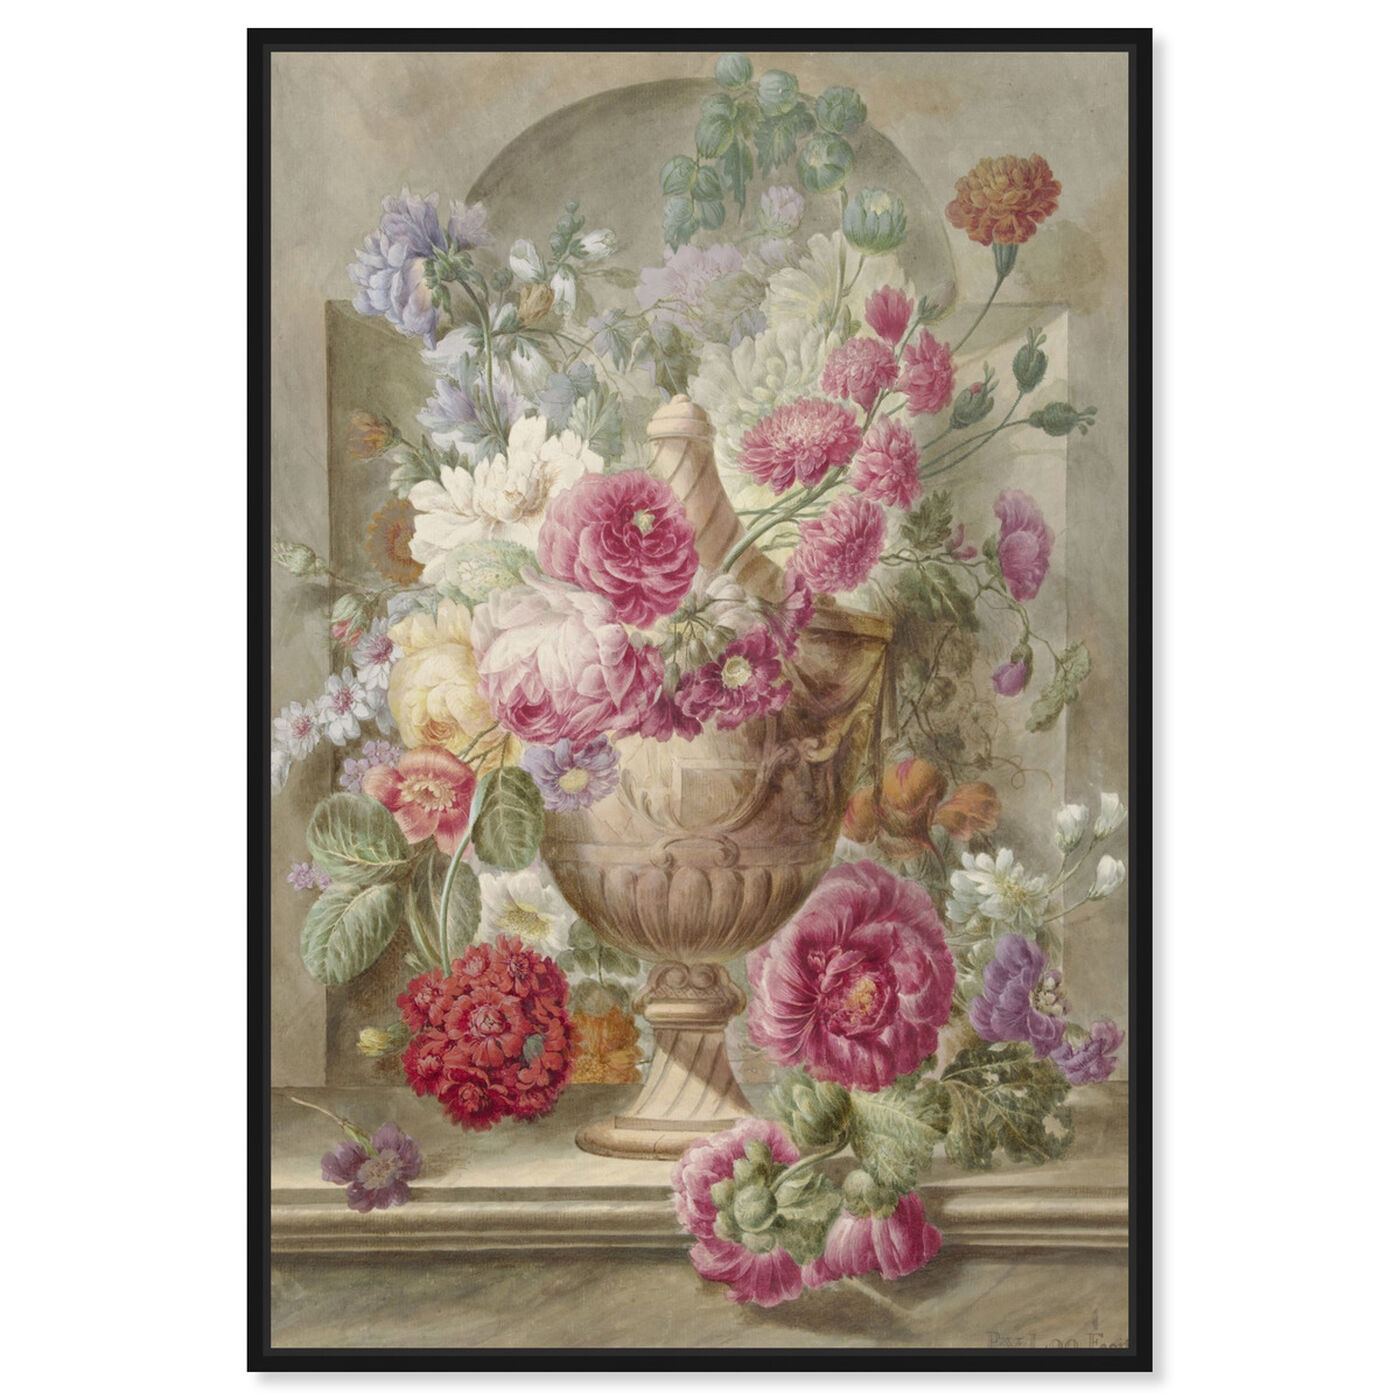 Front view of Flower Arrangement XII - The Art Cabinet featuring floral and botanical and florals art.